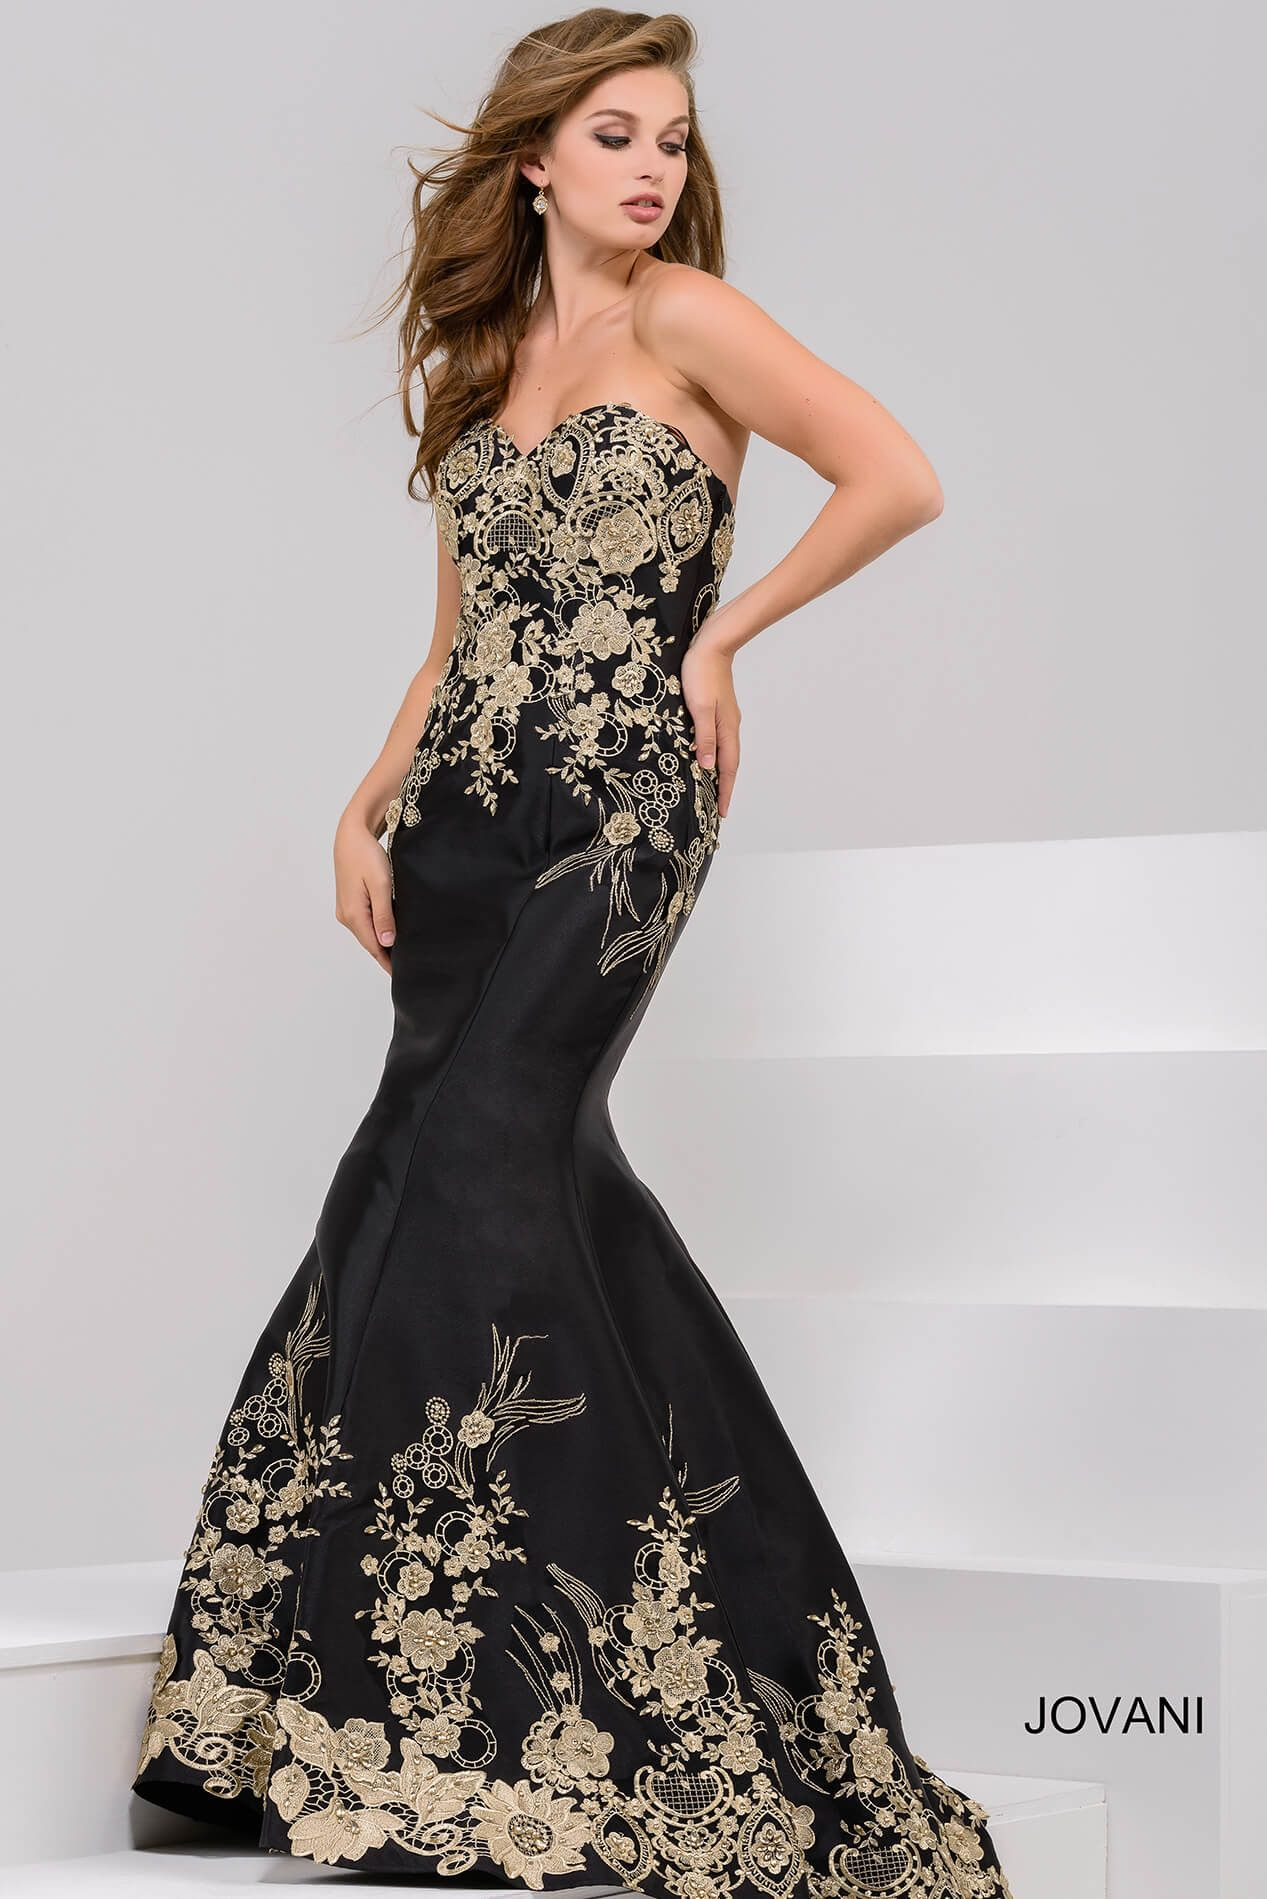 117995cf1425 JOVANI BLACK AND GOLD EMBROIDERED STRAPLESS MERMAID GOWN. #jovani #cloth #